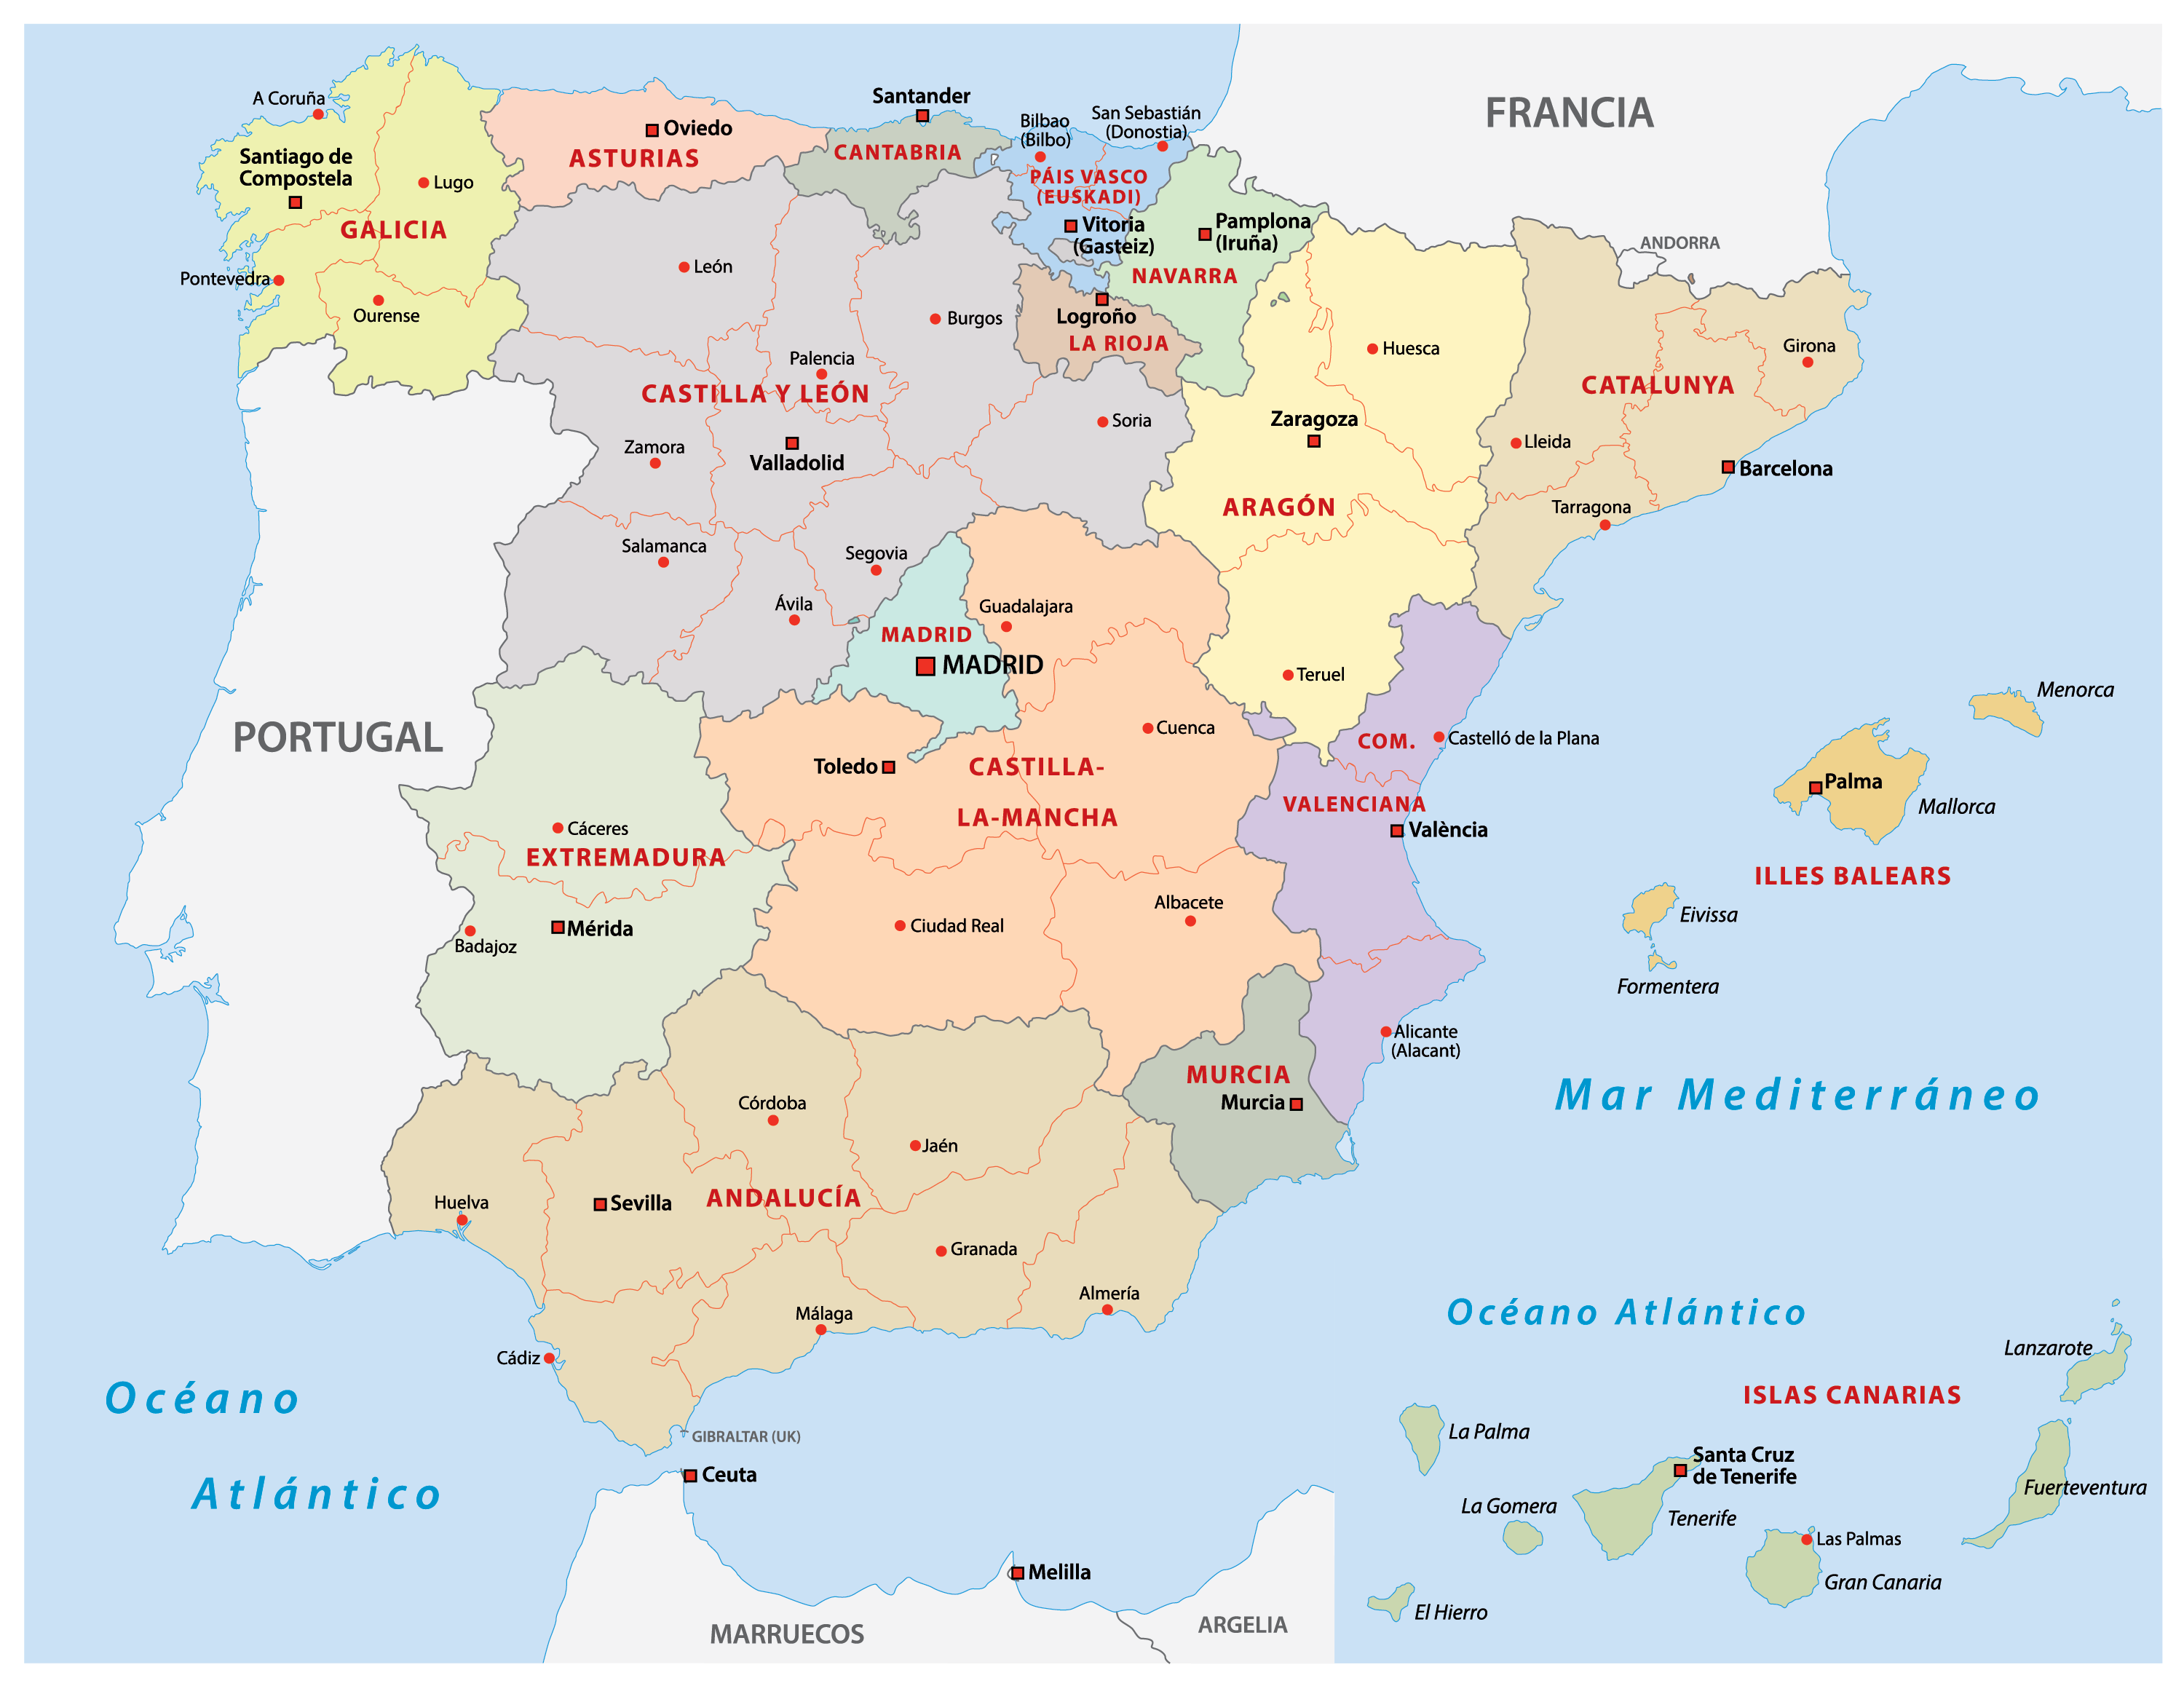 Political Map of Spain showing 17 autonomous communities and the capital city of Madrid.